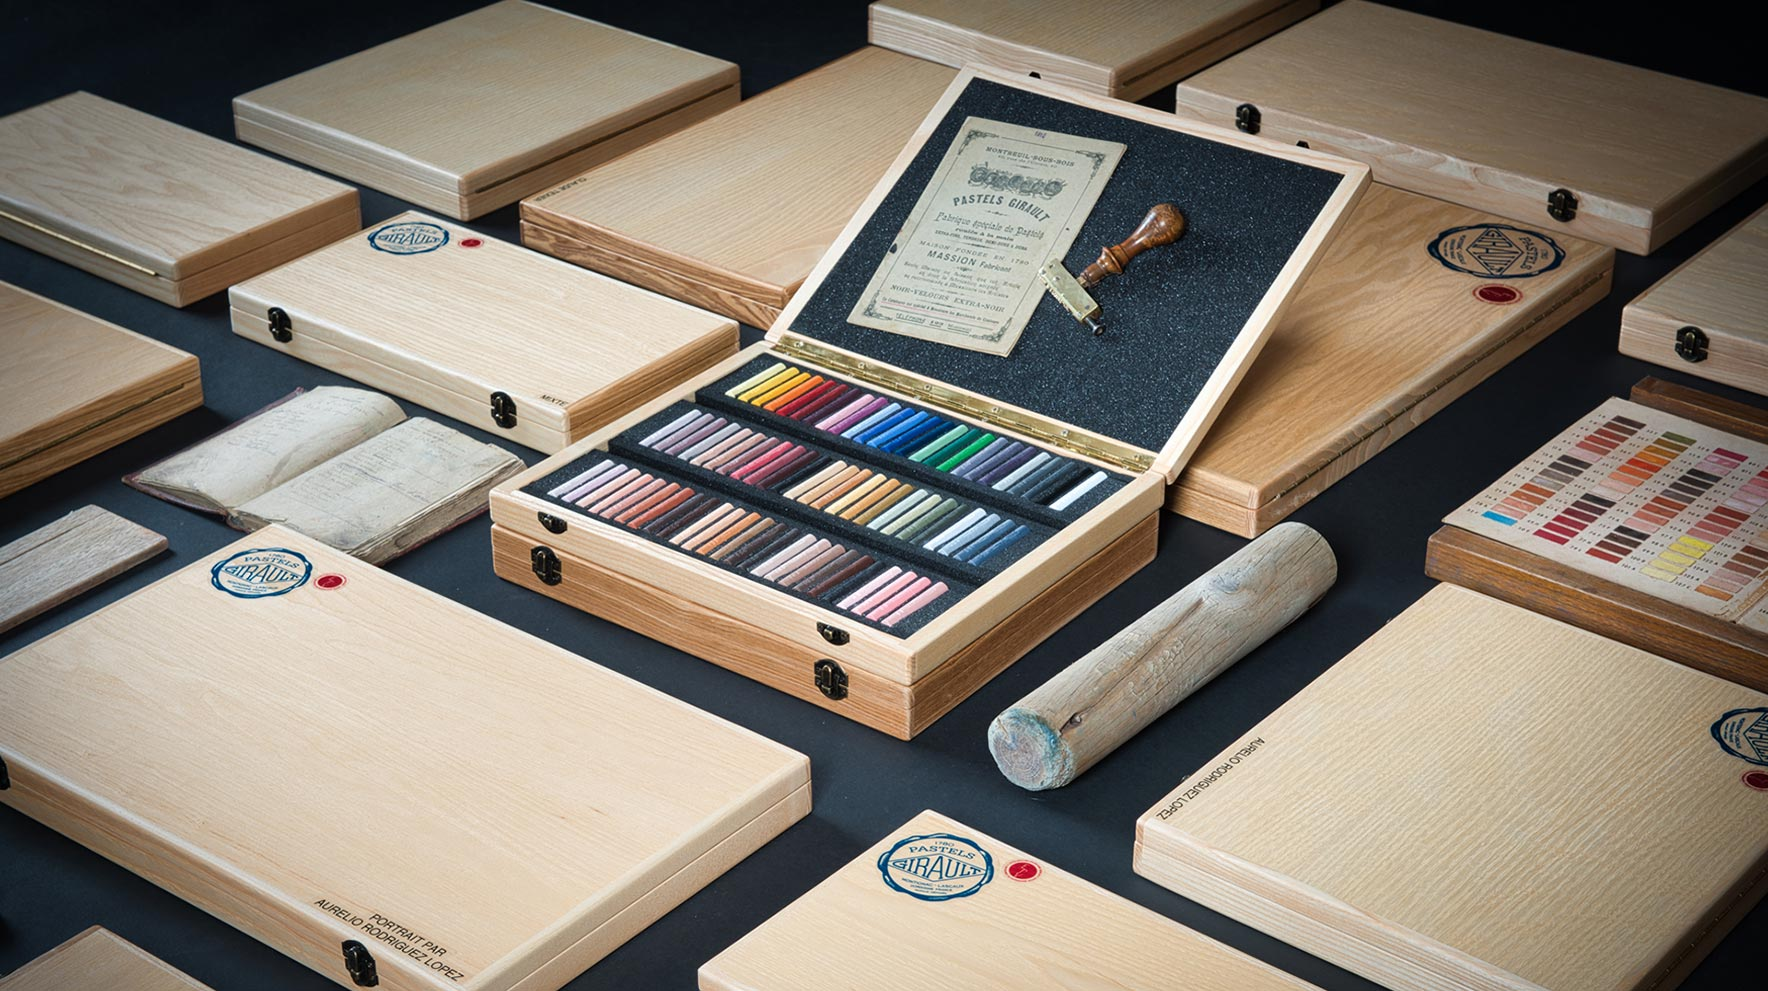 Pastels Girault - A range of wooden boxes for all your inspirations